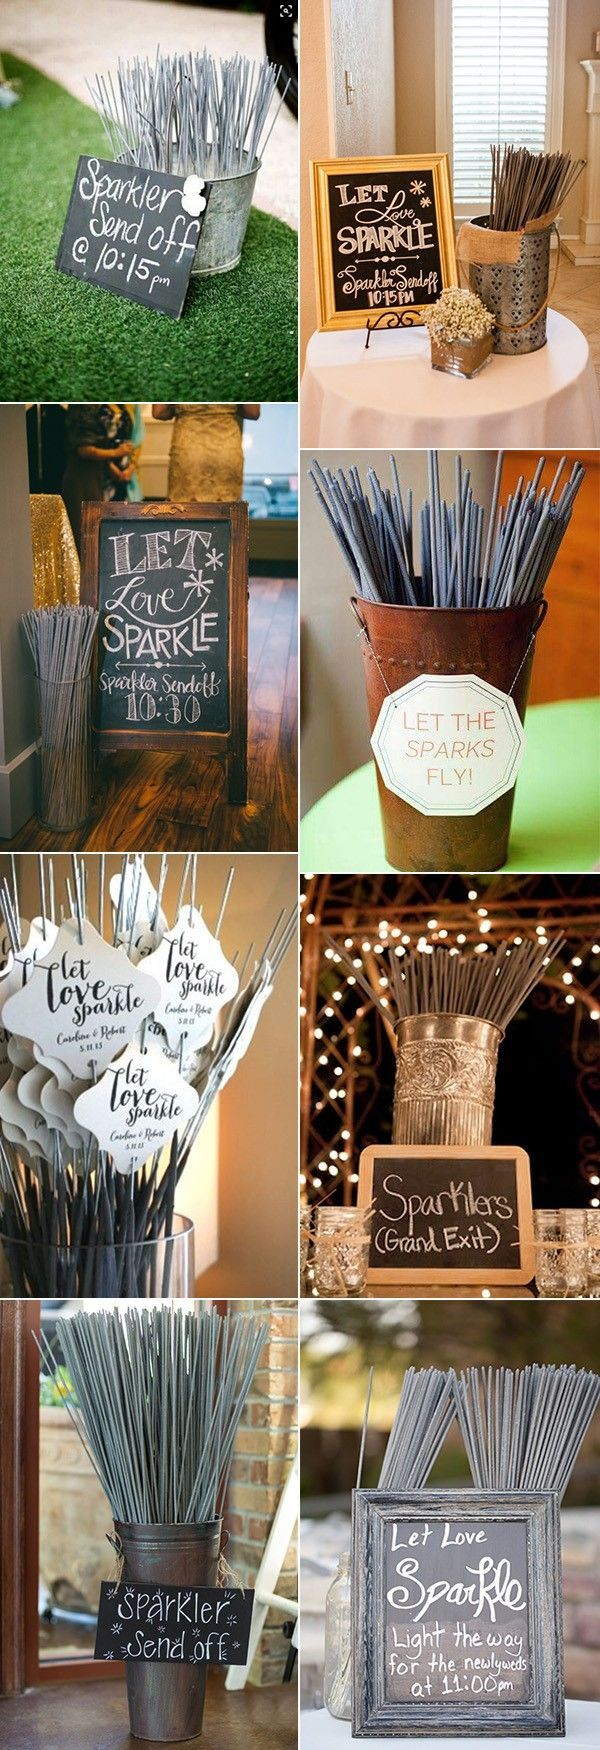 70+ Amazing Fall Wedding Ideas for 2020 | Fall Wedding Decorations | Fall Wedding Reception |...